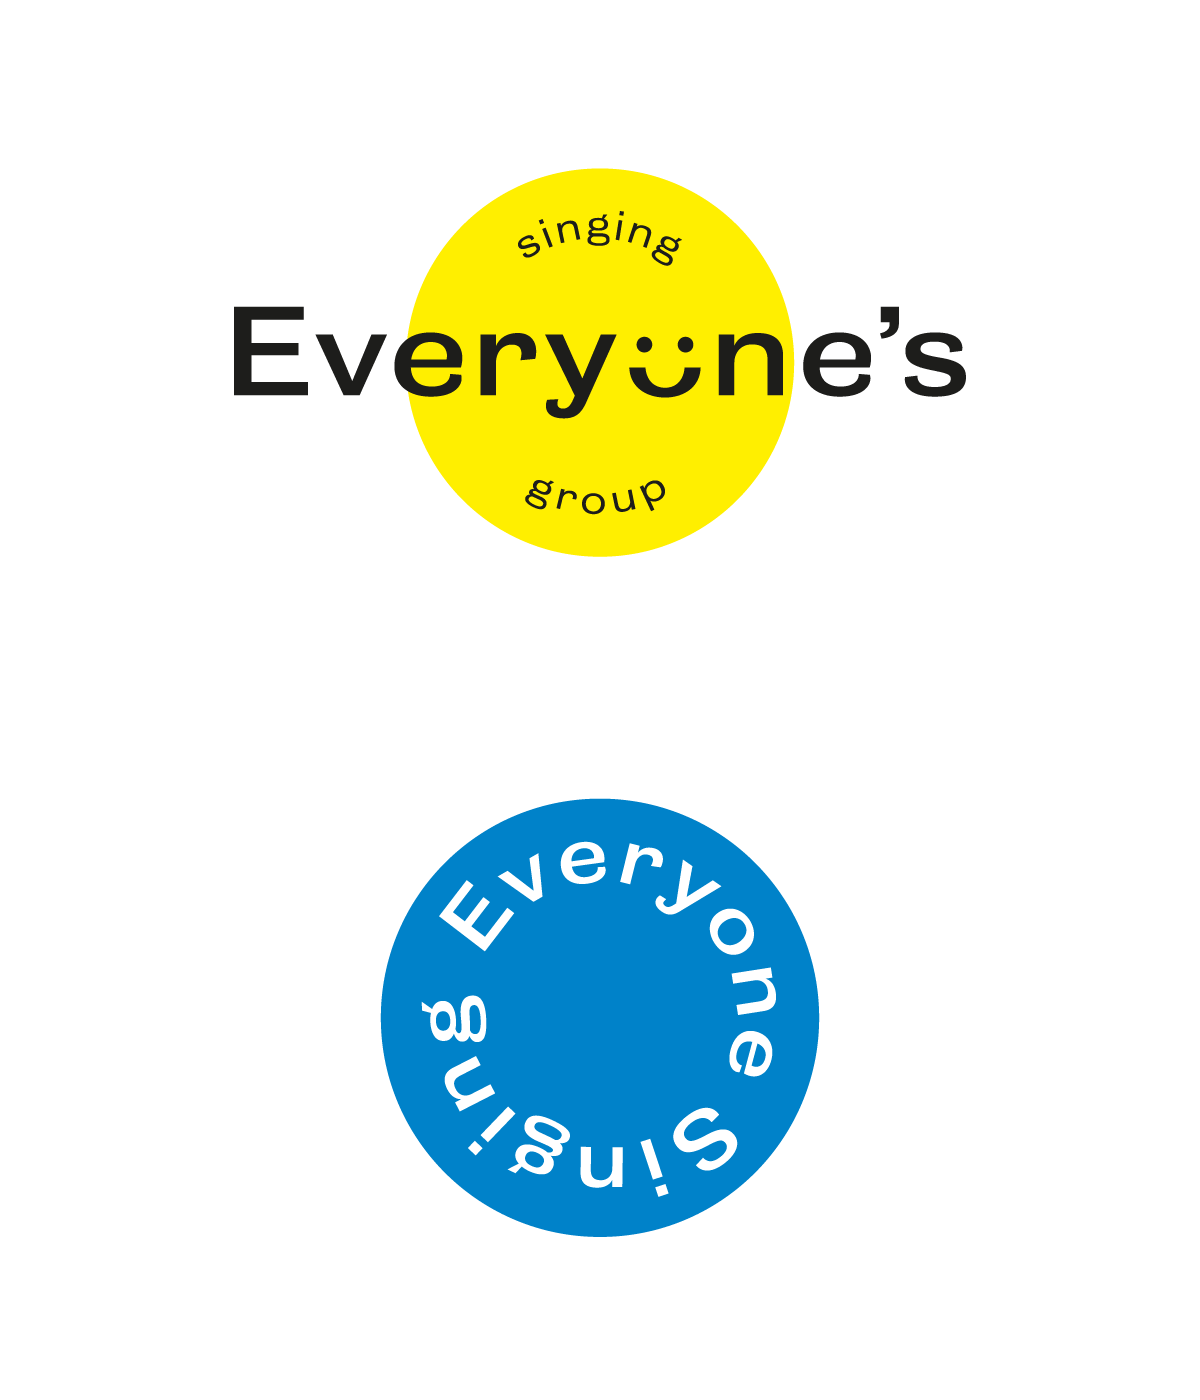 Everyone's Singing Group logo